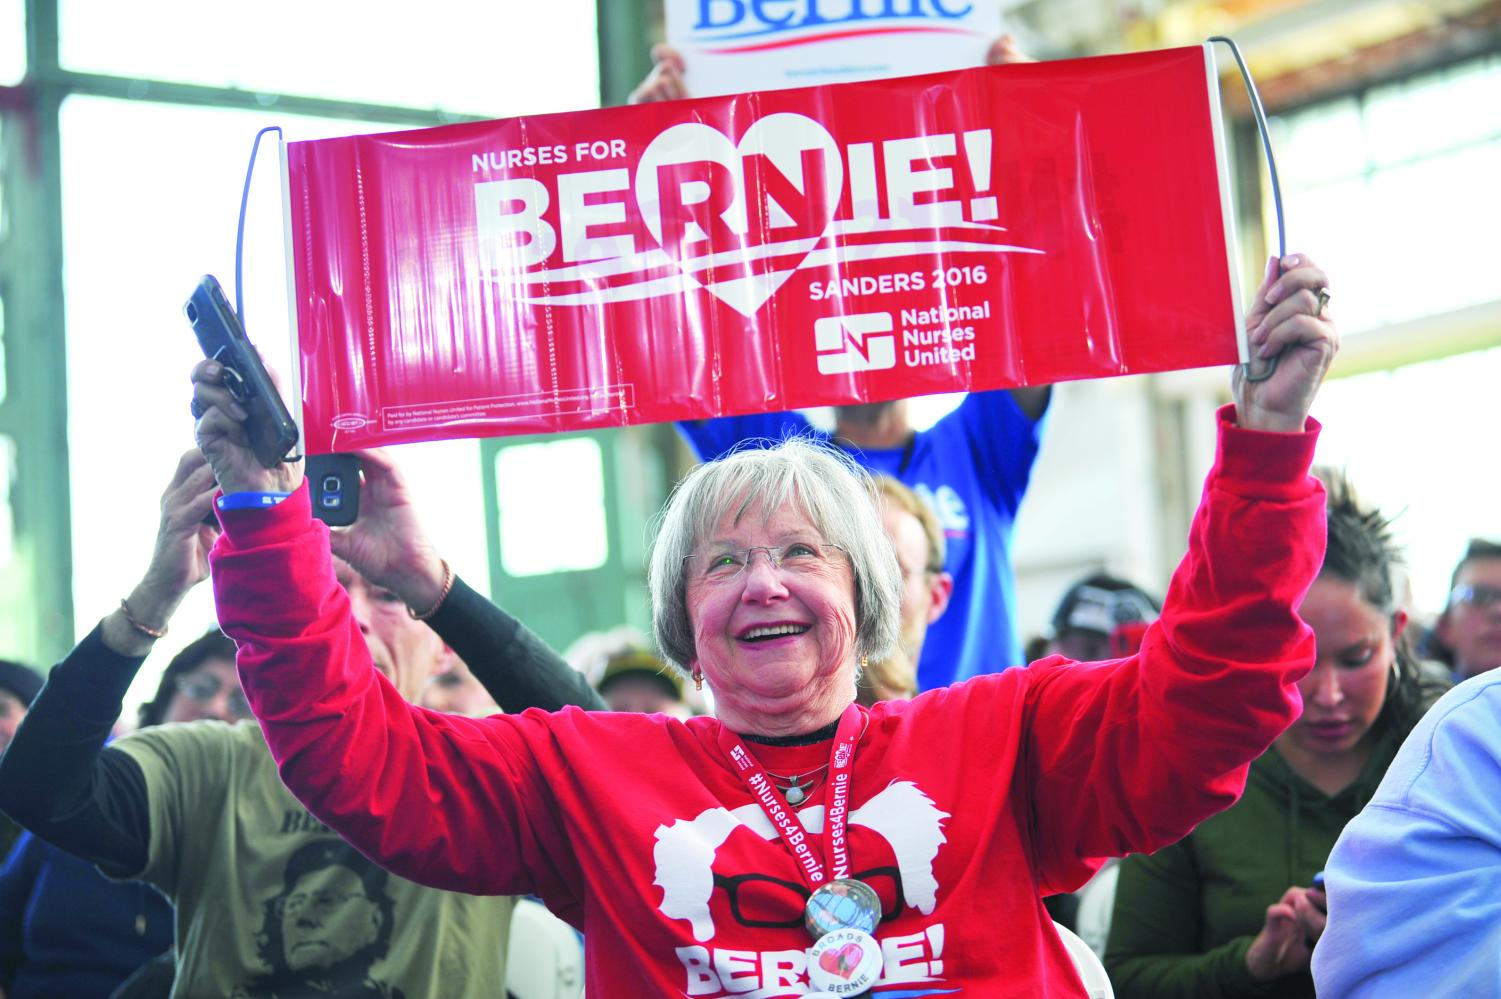 An+attendee+holds+up+a+2016+Sanders+campaign+sign+reading+%E2%80%9CNurses+for+Bernie%E2%80%9D+during+a+rally+at+Richmond%E2%80%99s+Craneway+Pavilion+on+Monday.+%0ASanders%E2%80%99+campaign+policies+have+not+changed+much+from+his+2016+campaign%2C+and+have+been+adopted+by+many+of+his+democratic+rivals.+